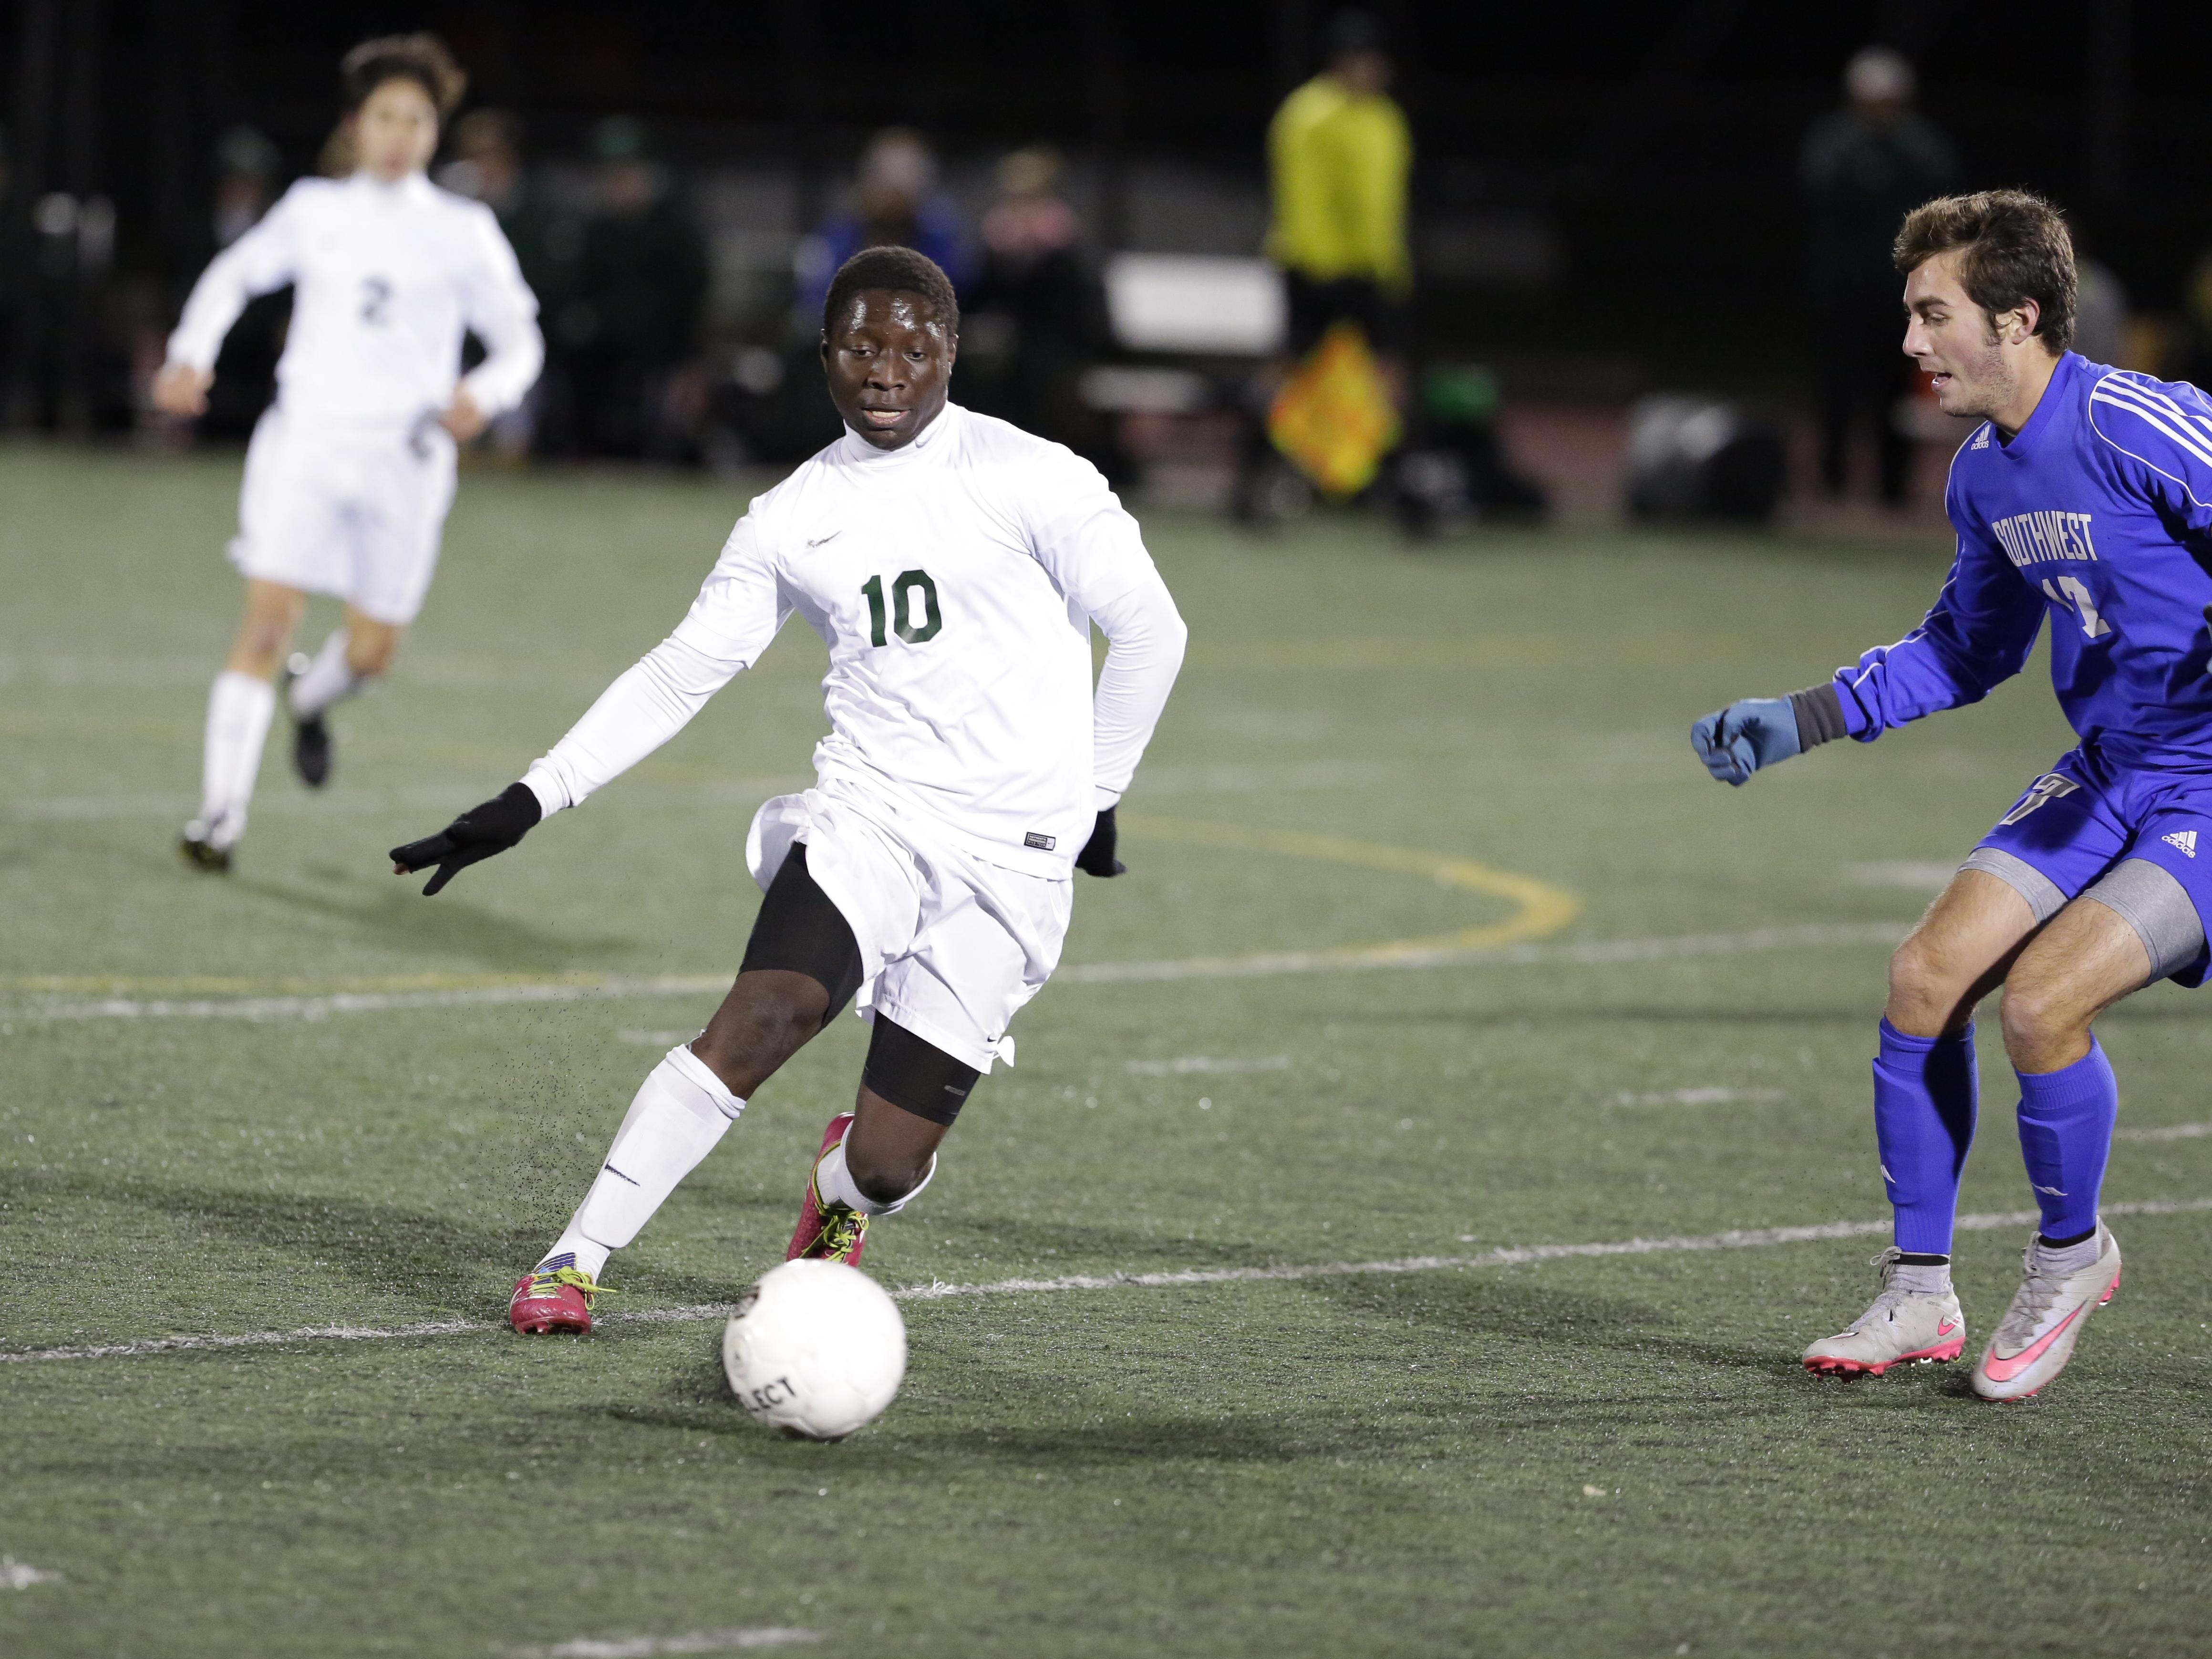 Oshkosh North's Ebrima Colley dribbles the the ball upfield during Thursssday's WIAA Division 2 sectional semifinal against Green Bay Southwest at J. J. Keller Field at Titan Stadium.